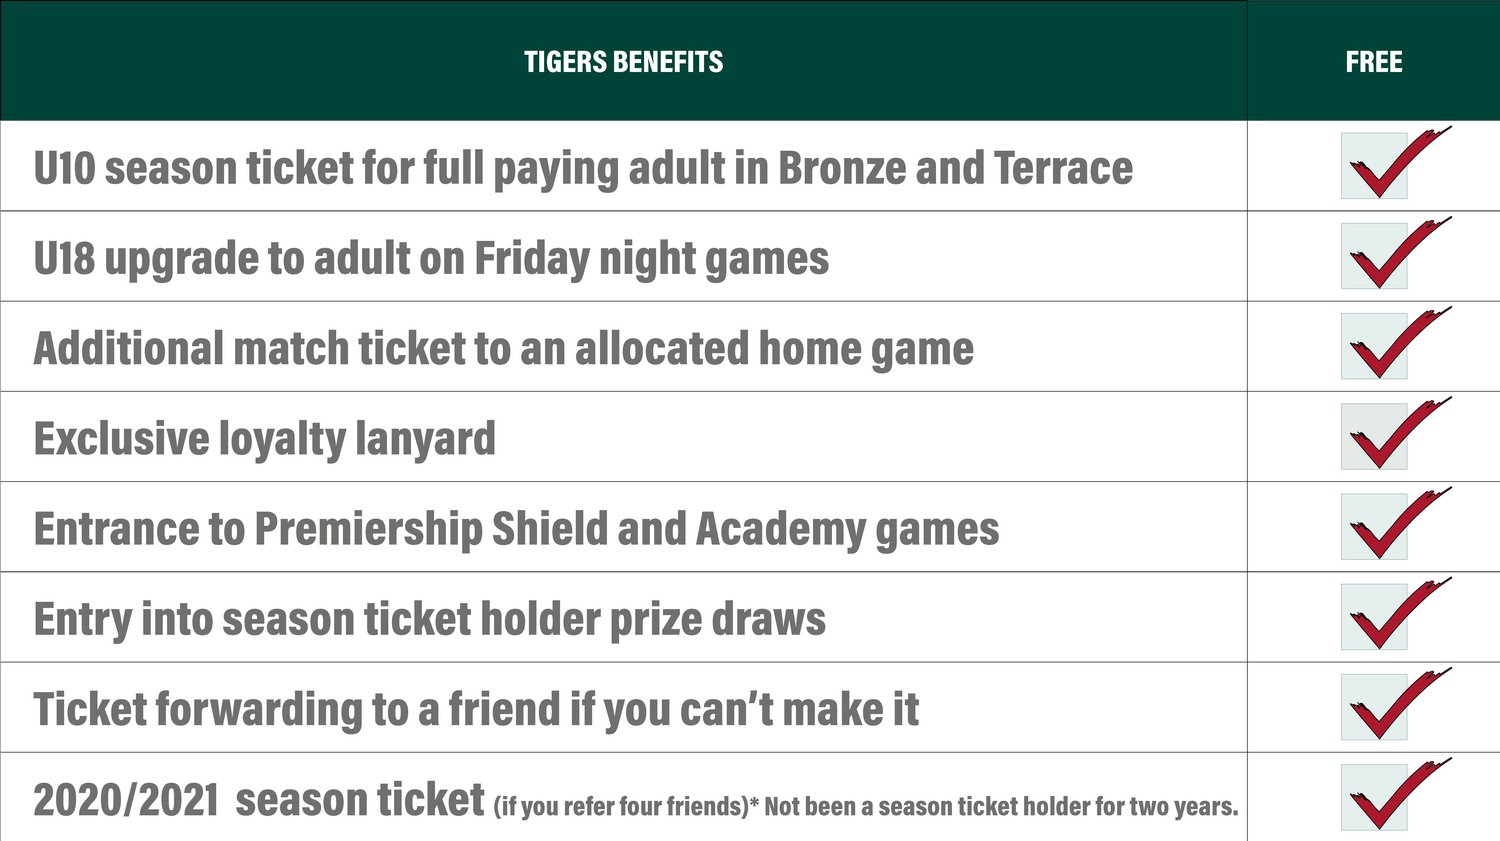 Season Ticket FREE Benefits